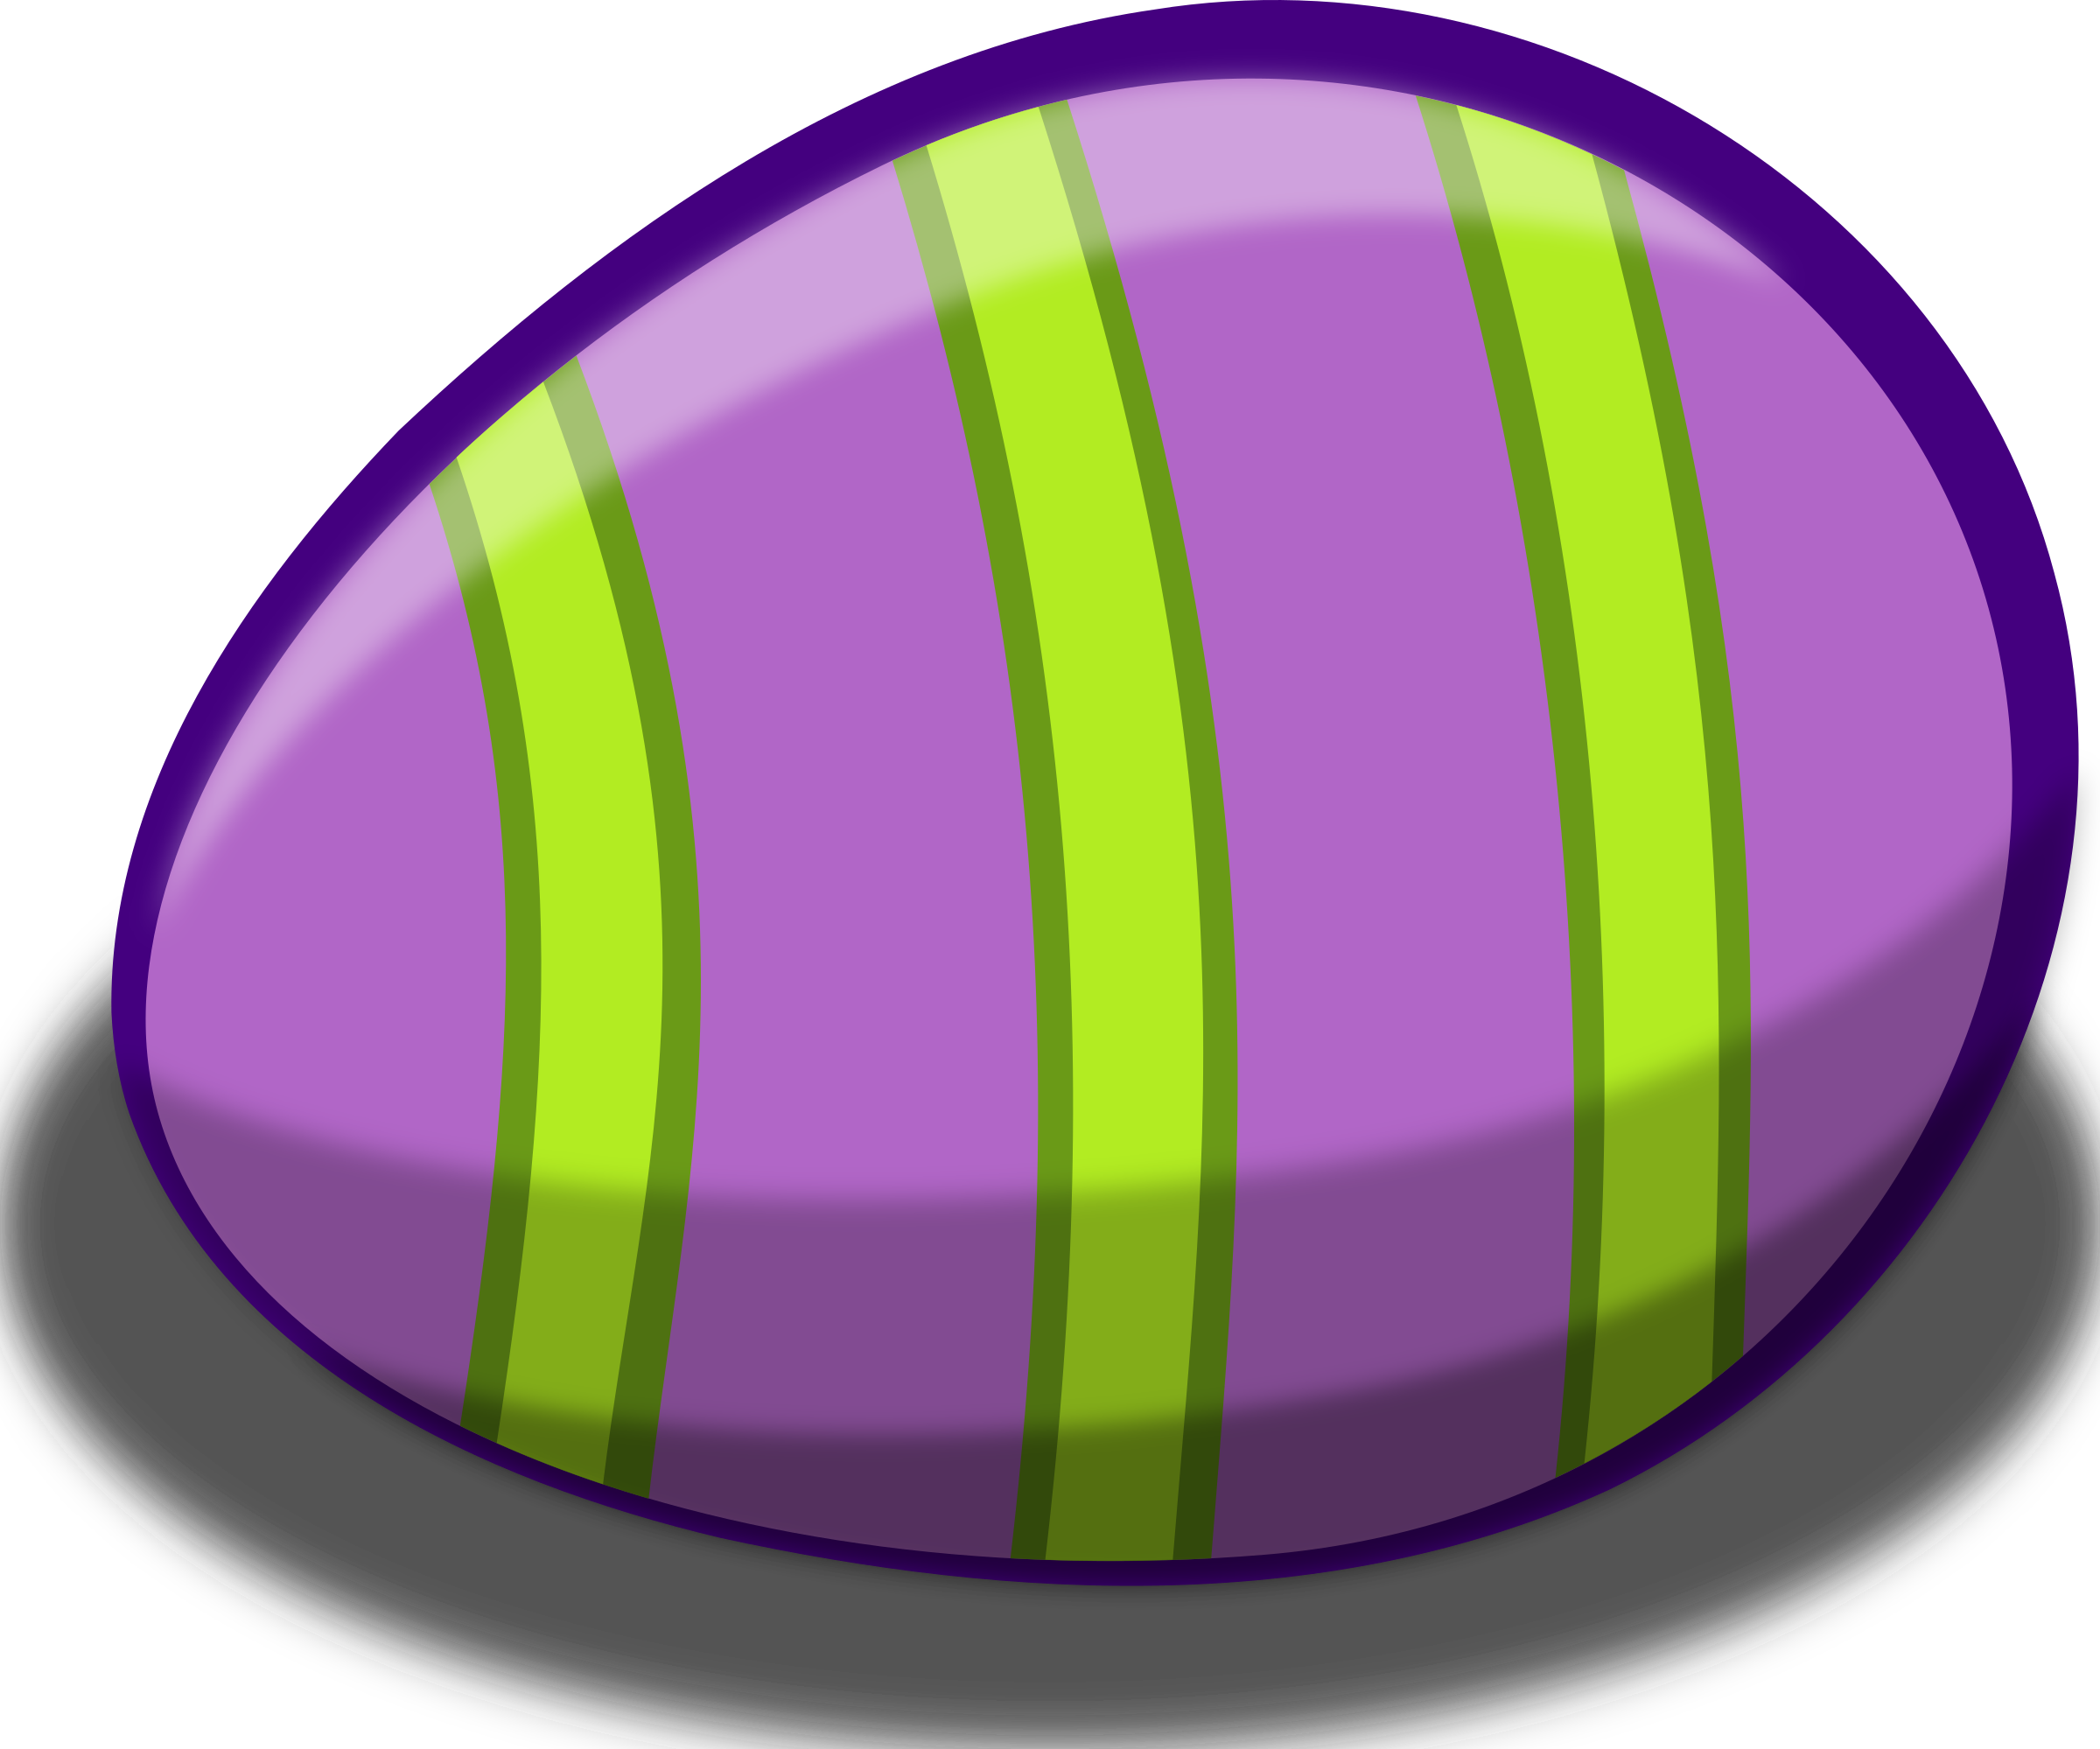 free stock photo of purple striped easter egg vector clipart